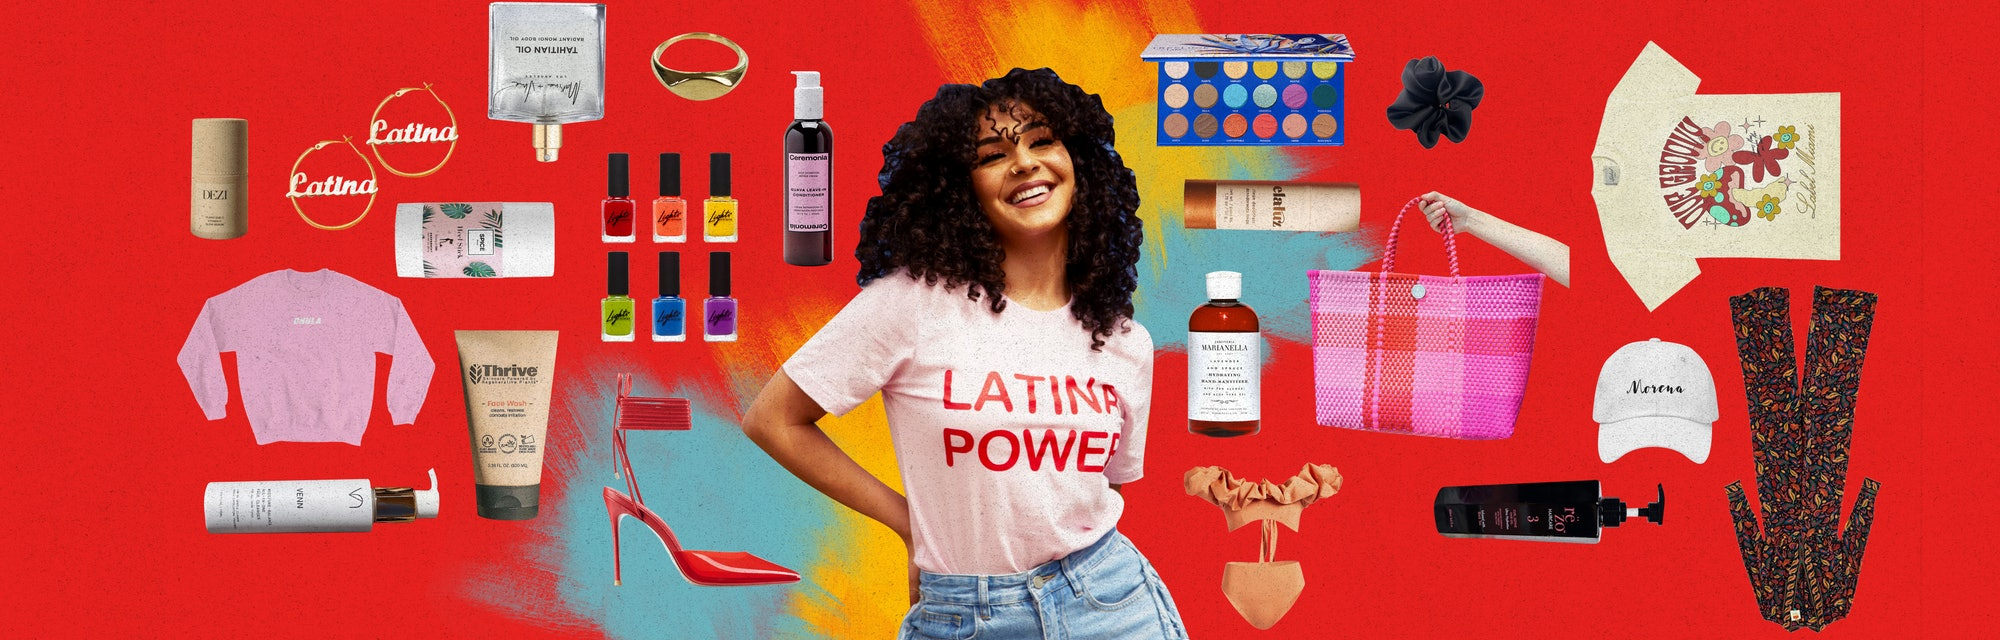 Here are 21 latinx owned fashion and beauty brands to support beyond Latinx Heritage Month.